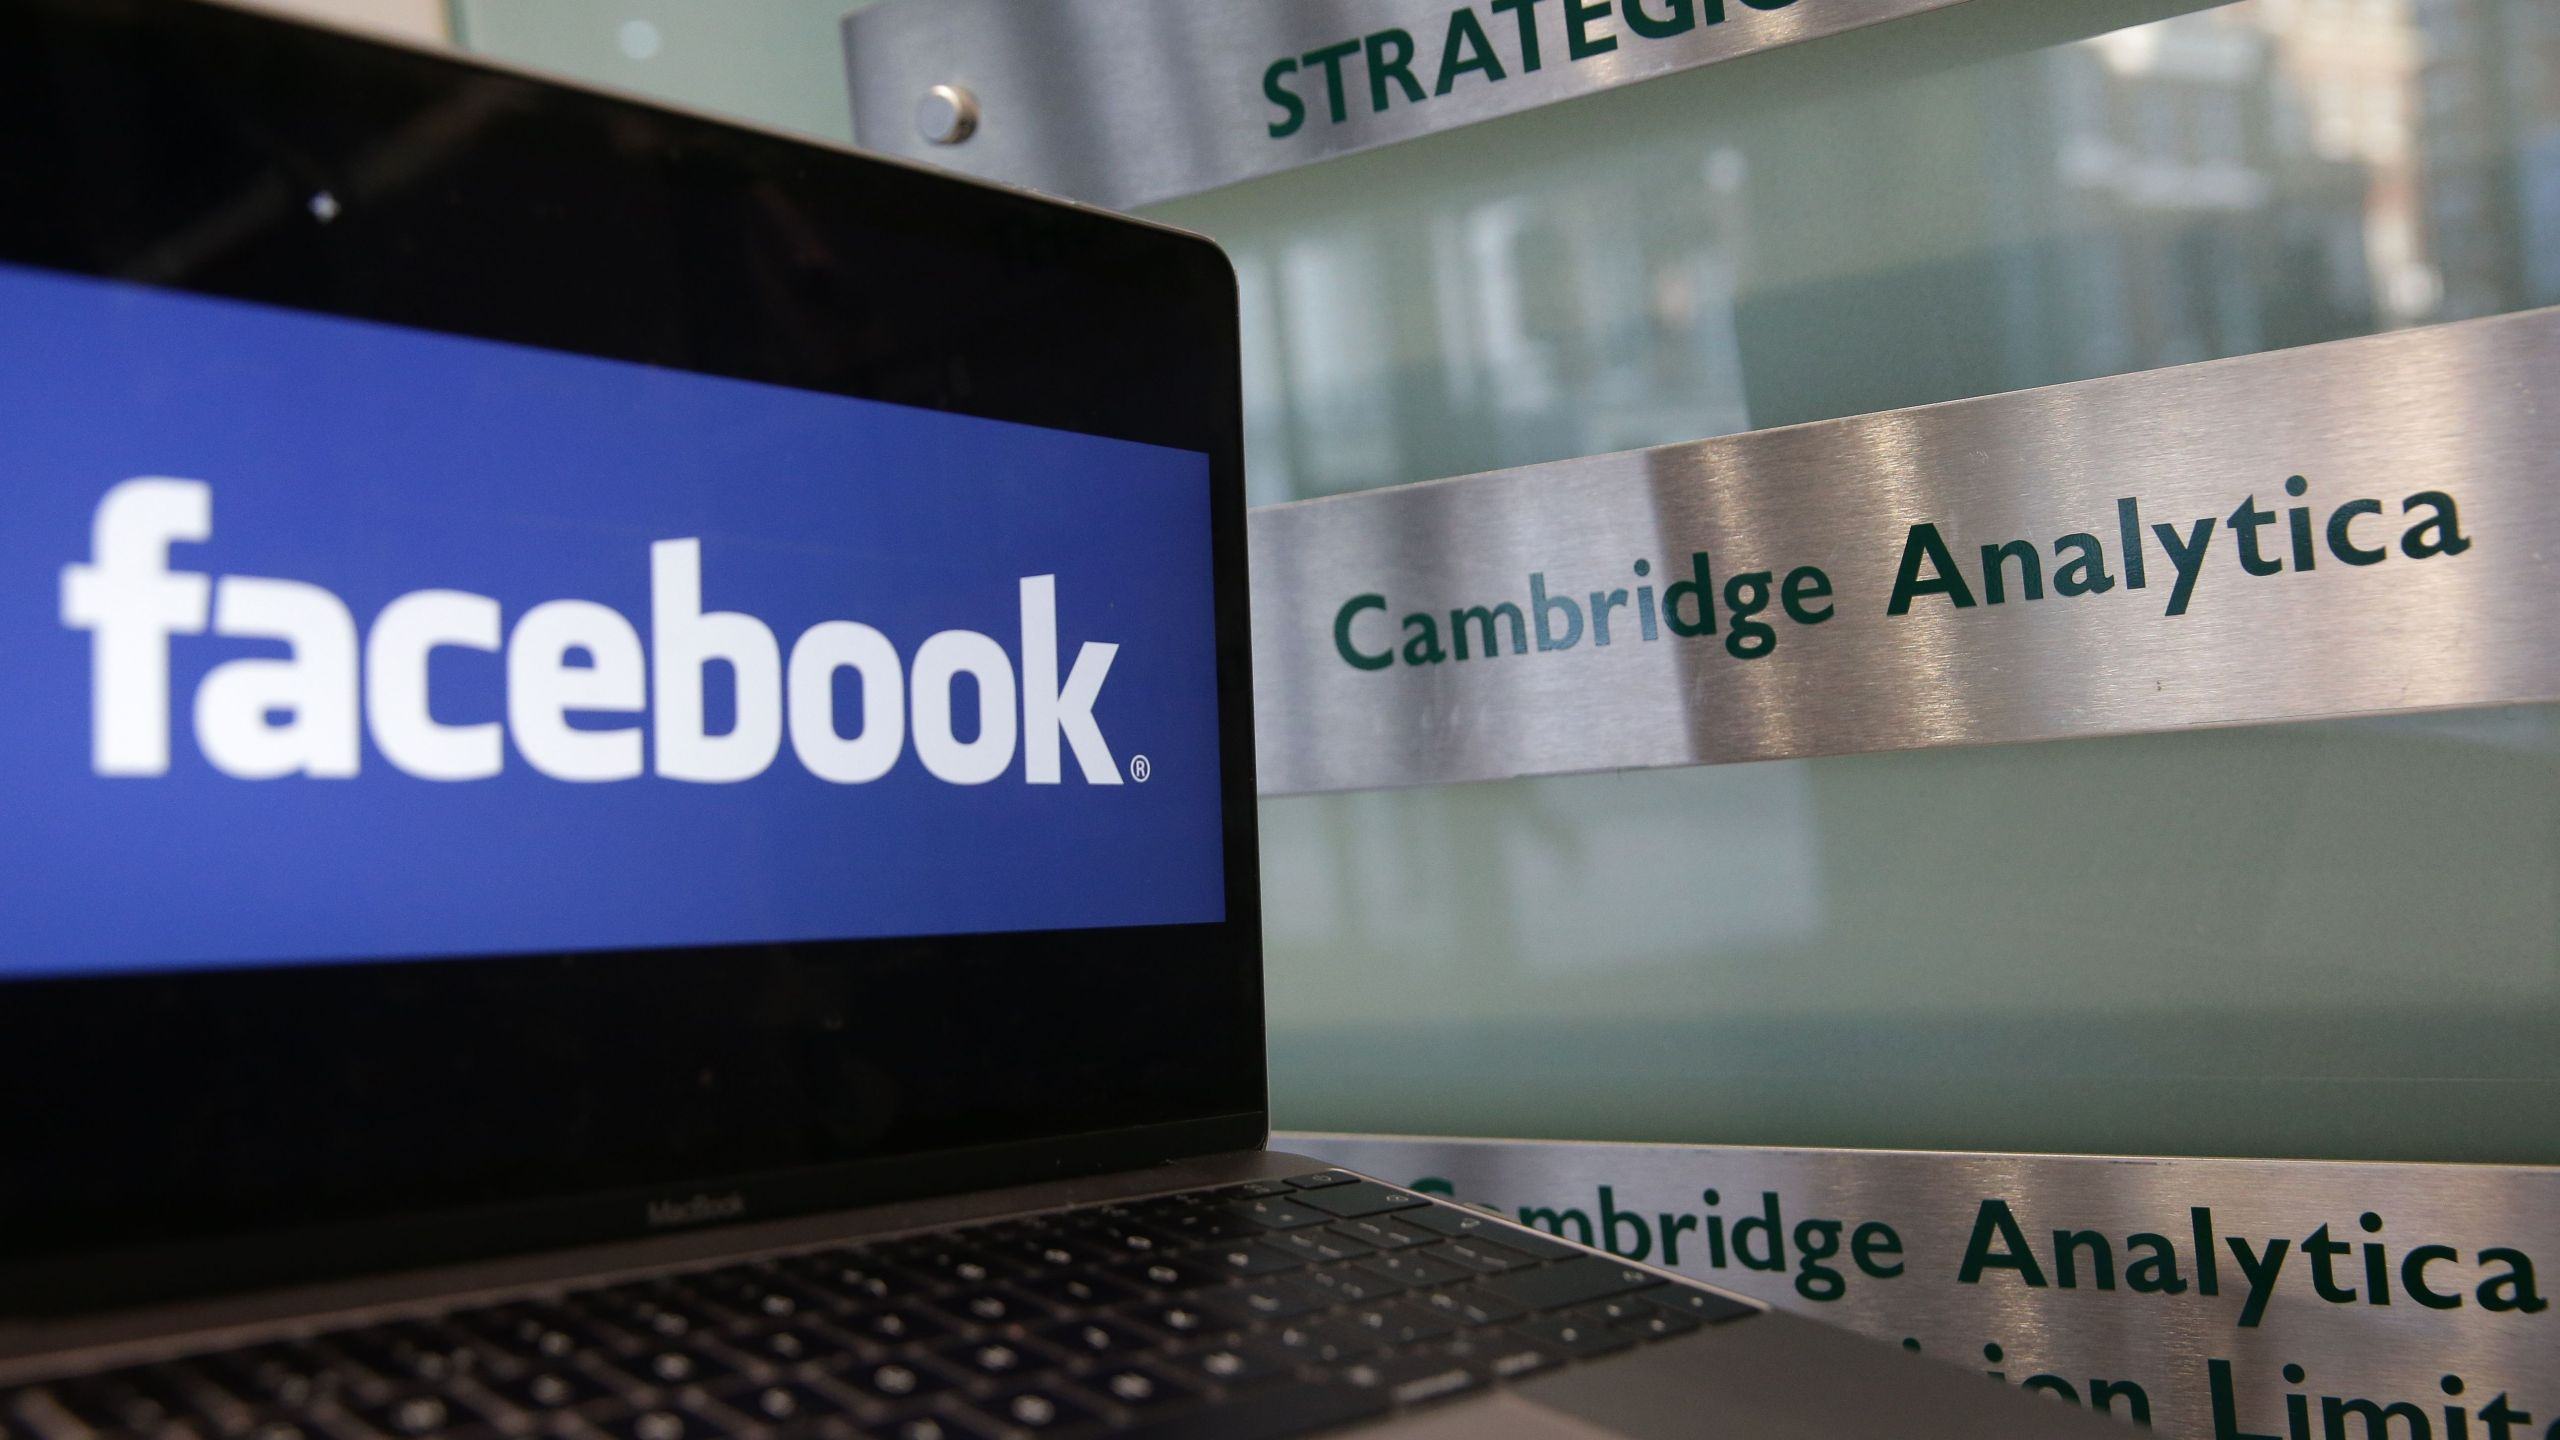 A laptop showing the Facebook logo is held alongside a Cambridge Analytica sign at the entrance to the building housing the offices of Cambridge Analytica in central London on March 21, 2018. (Credit: Daniel Leal-Olivas / AFP / Getty Images)